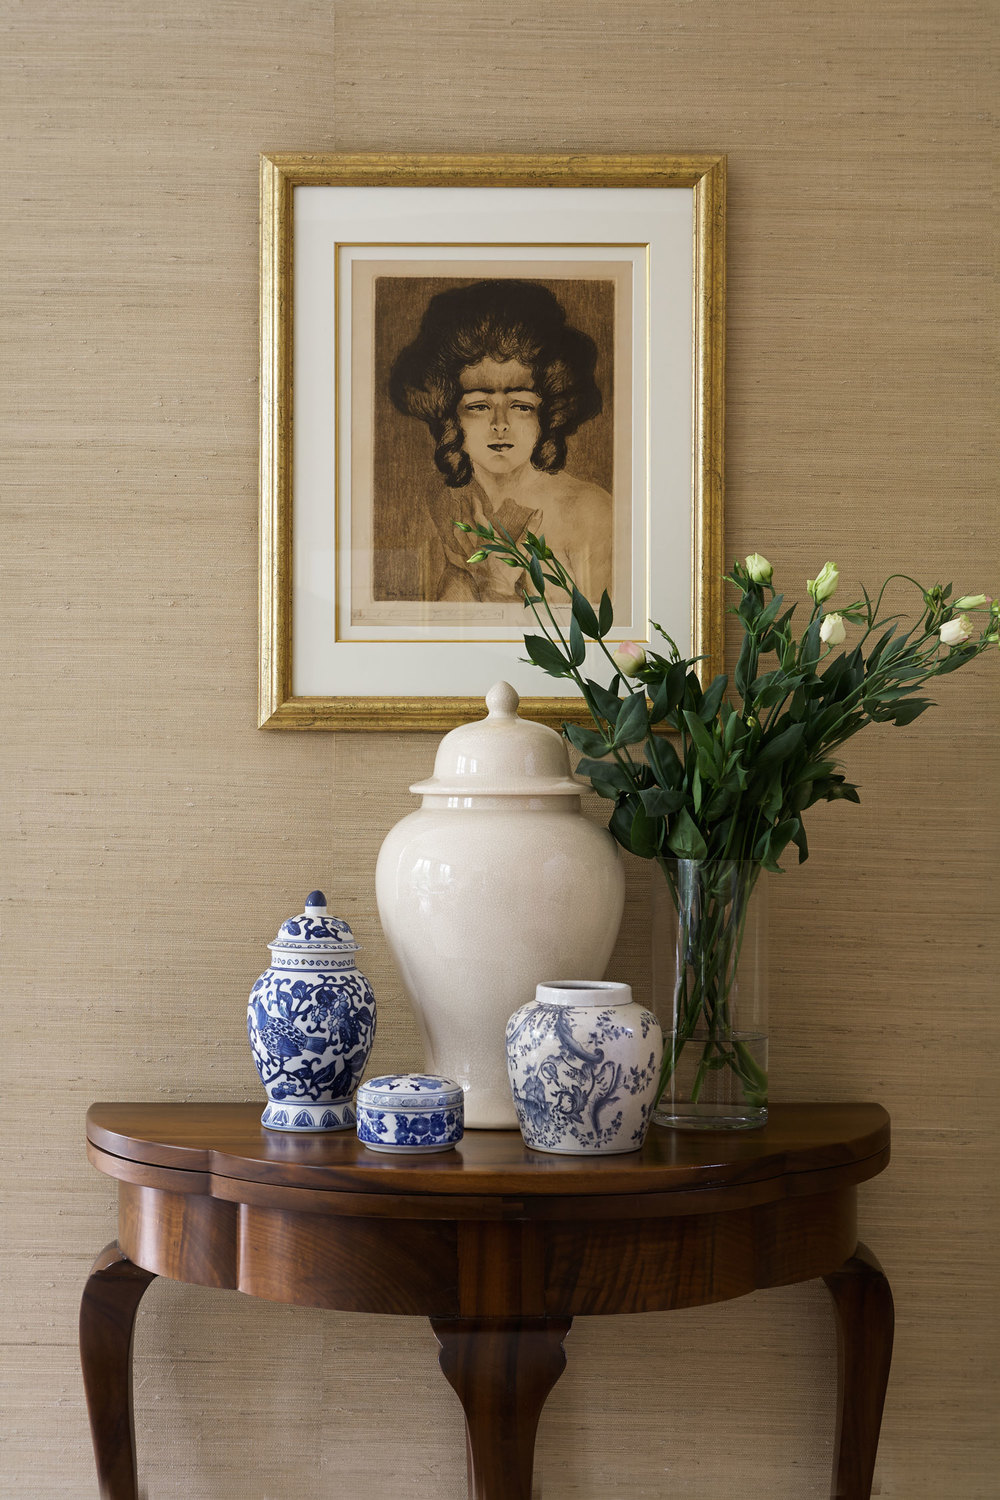 walnut-timber-demilune-console-lady-print-gold-frame-chinese-urns-diane-bergeron.jpg